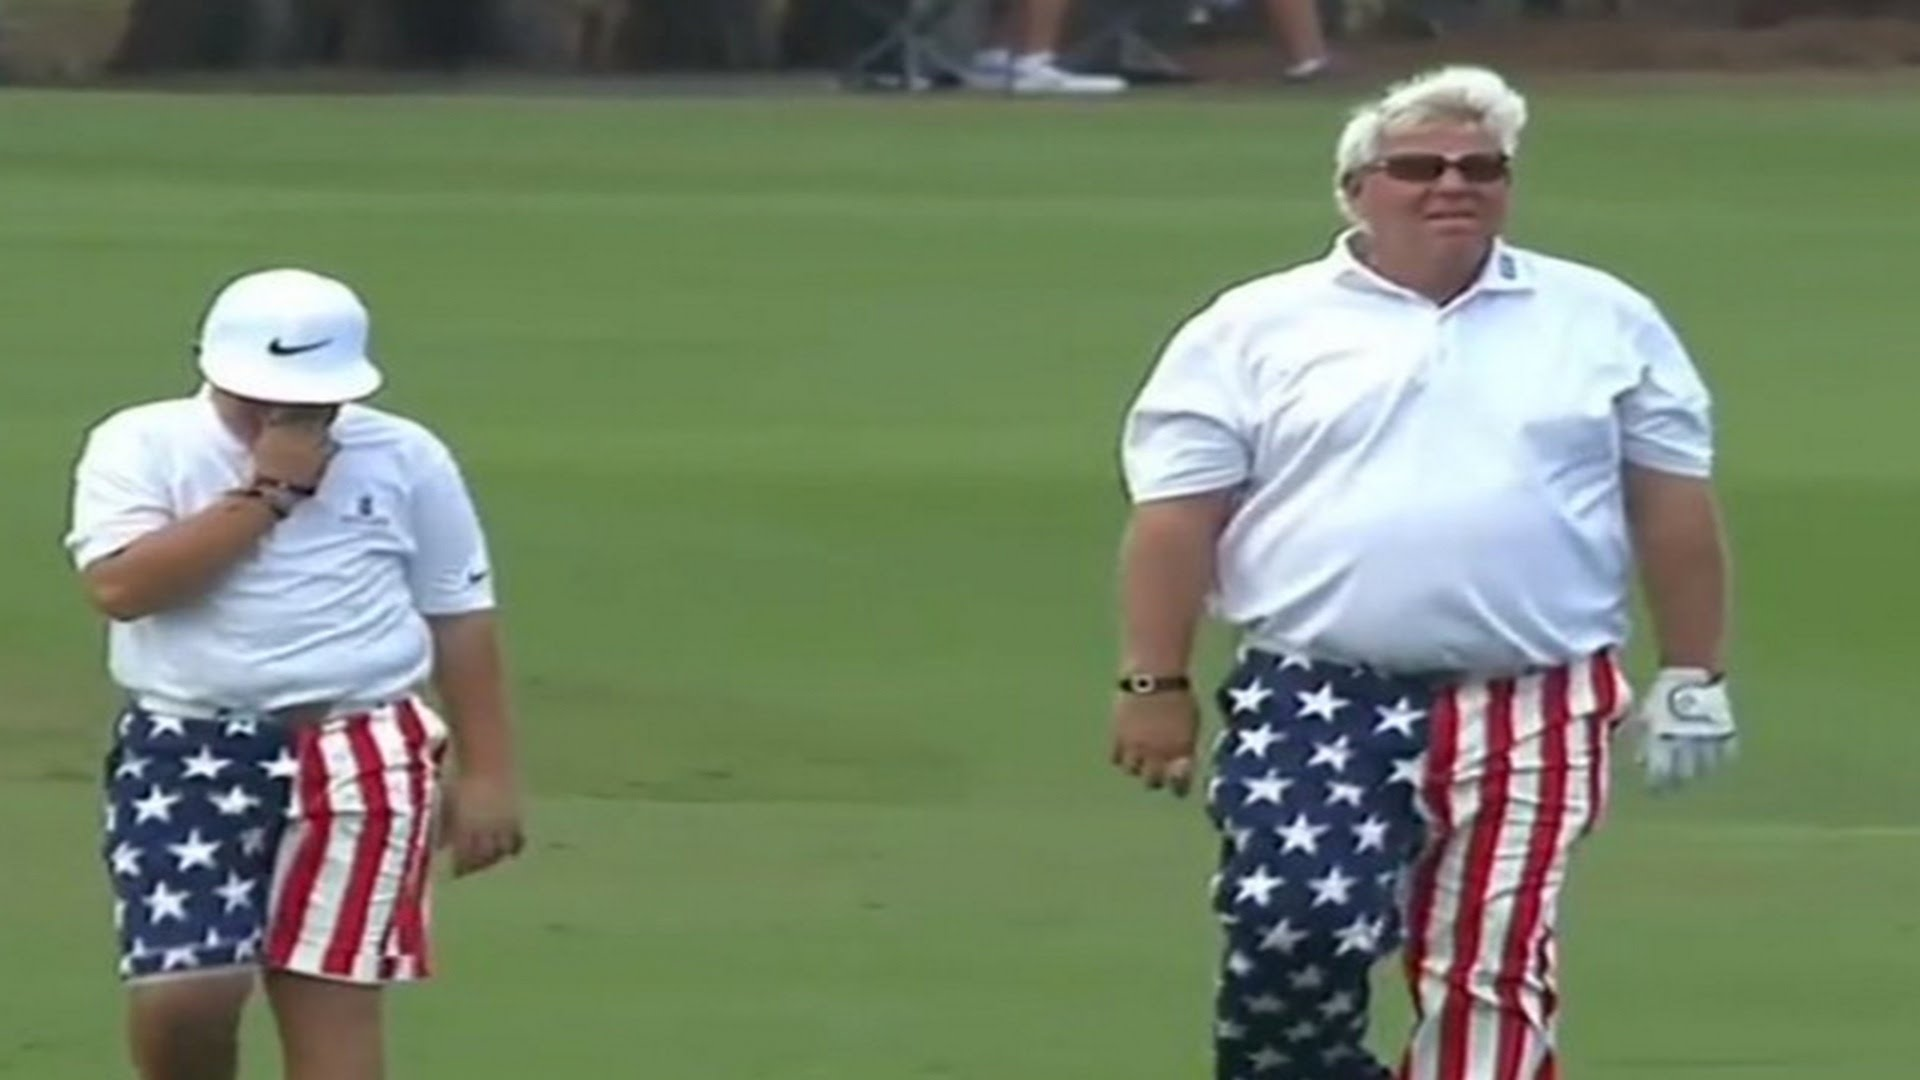 John Daly Turns Down LPGA Player's Charity Golf Invite Because Of Her Comments On Trump